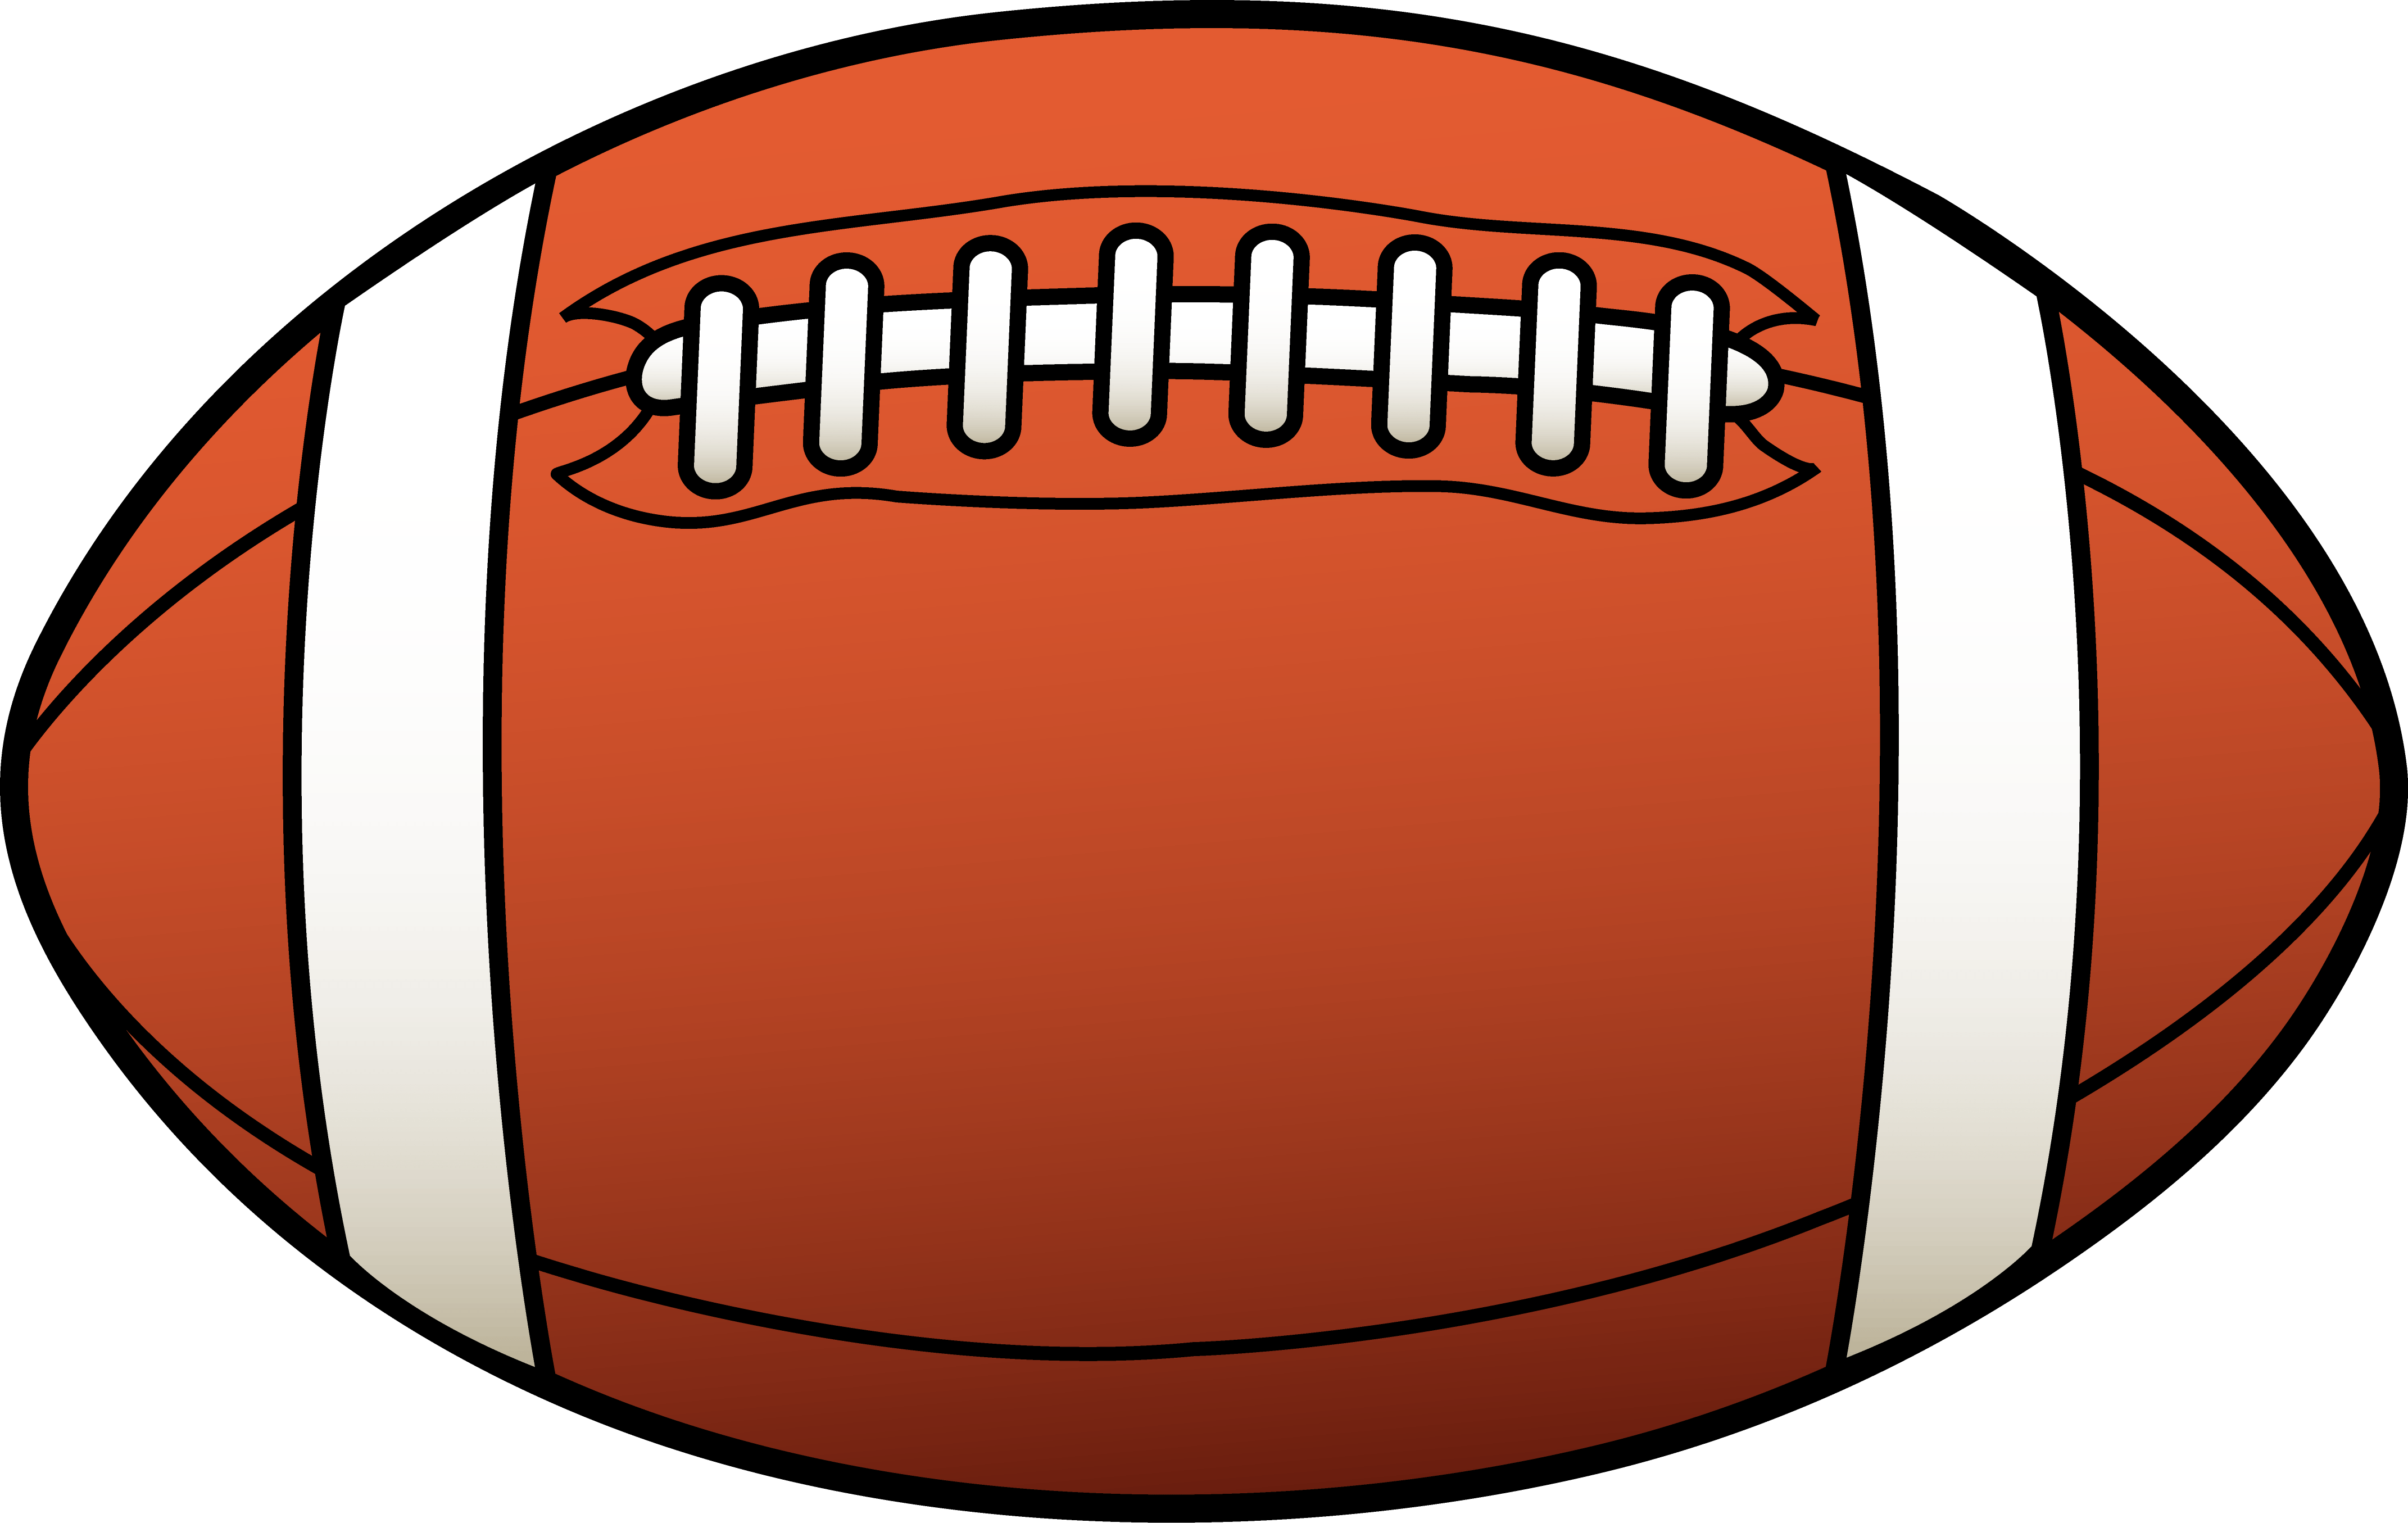 Solid football clipart svg black and white library Game Scores | The Morgan PawPrint svg black and white library